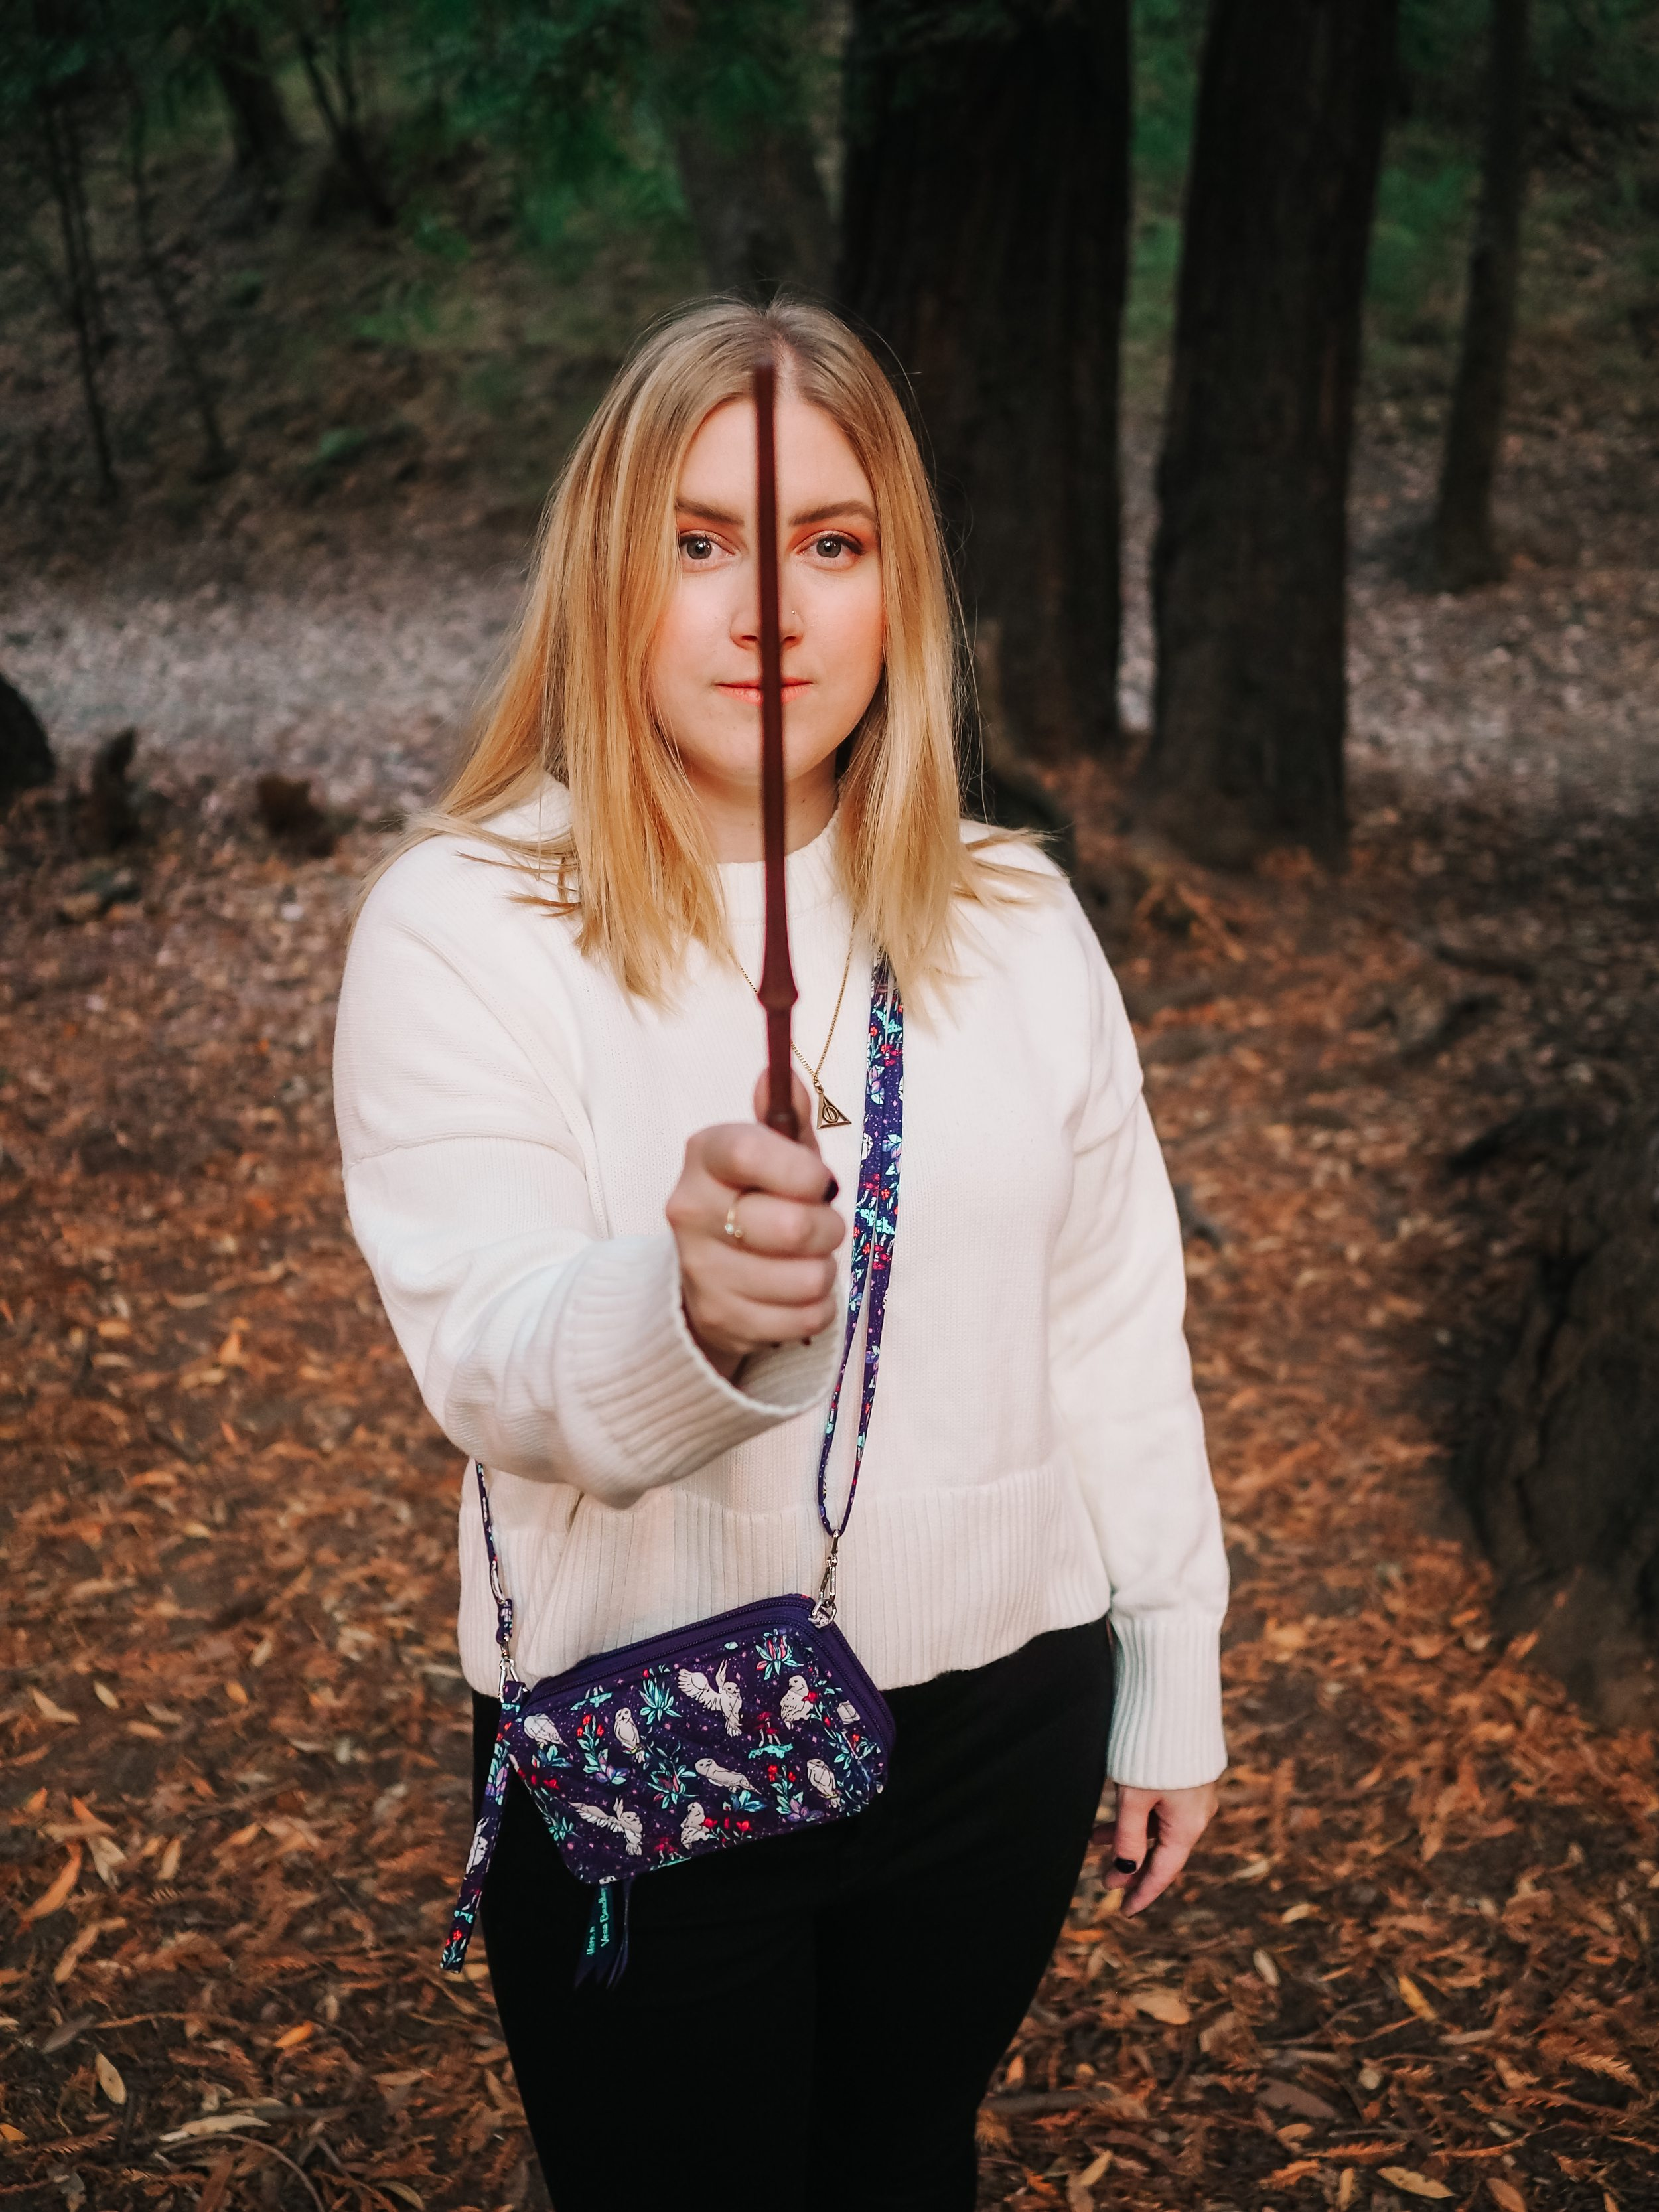 Kelsey from Blondes & Bagels showcases the new Forbidden Forest inspired Vera Bradley Harry Potter collection, packed with magical creatures.